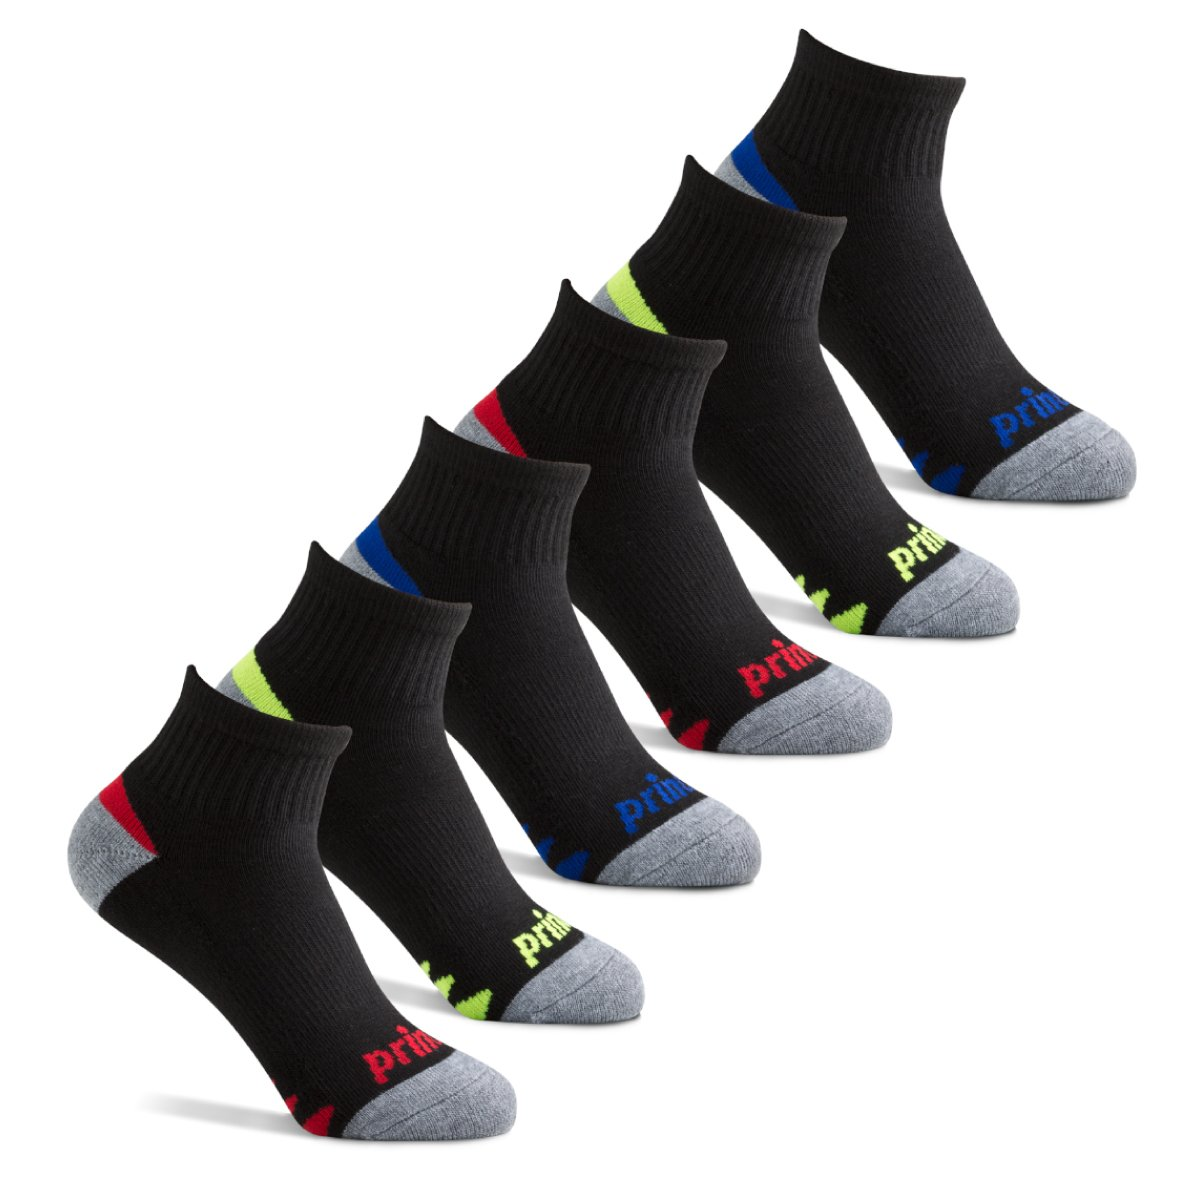 c336ad7b2 Prince Boys  Quarter Length Athletic Socks with Cushion for Active Kids  product image